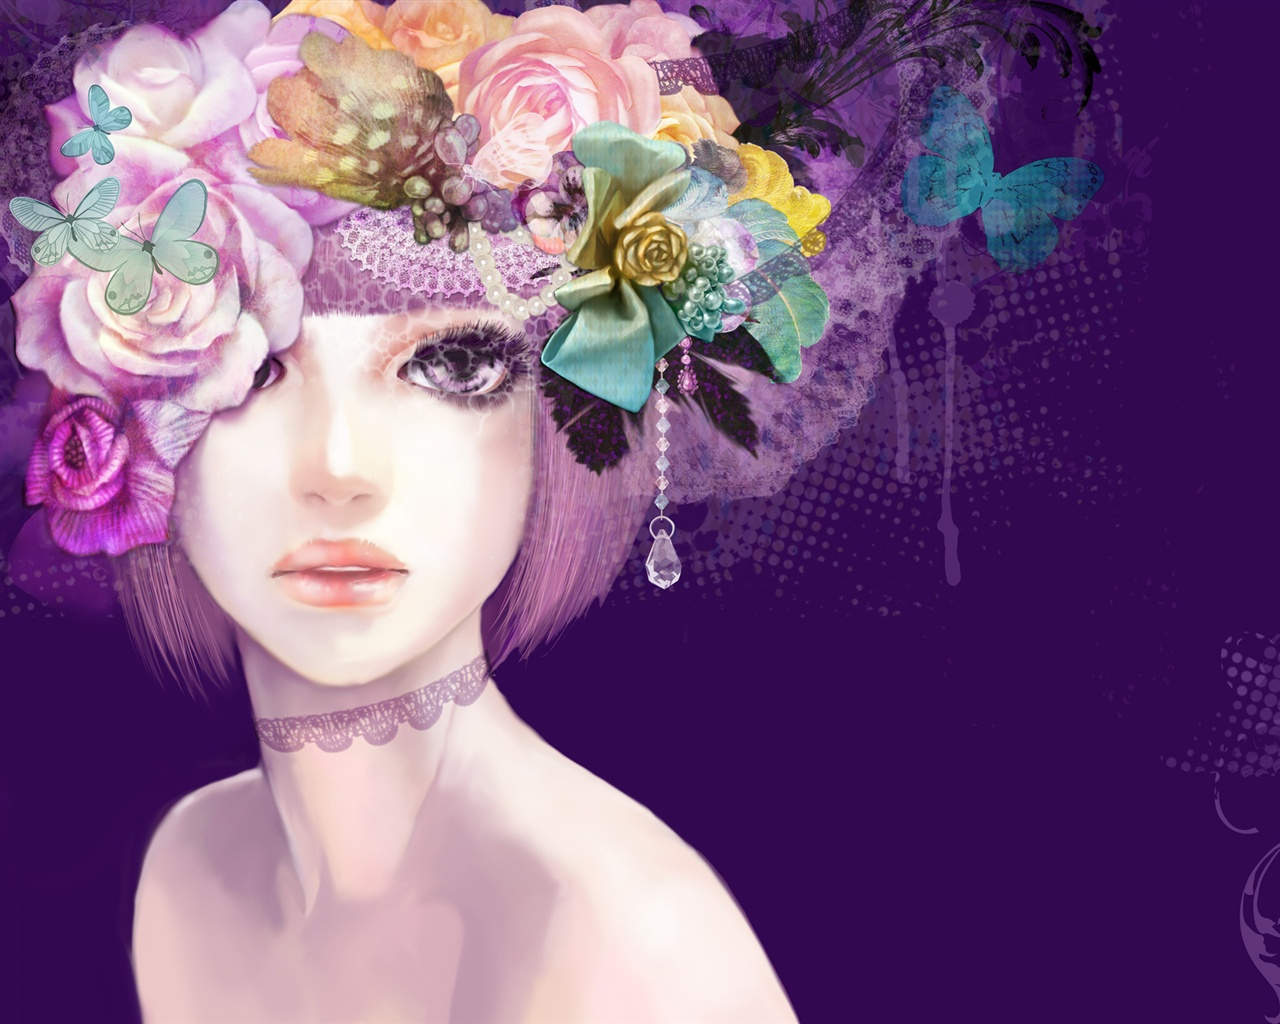 Girl Colorful flowers hair creative wallpaper - 1280x1024